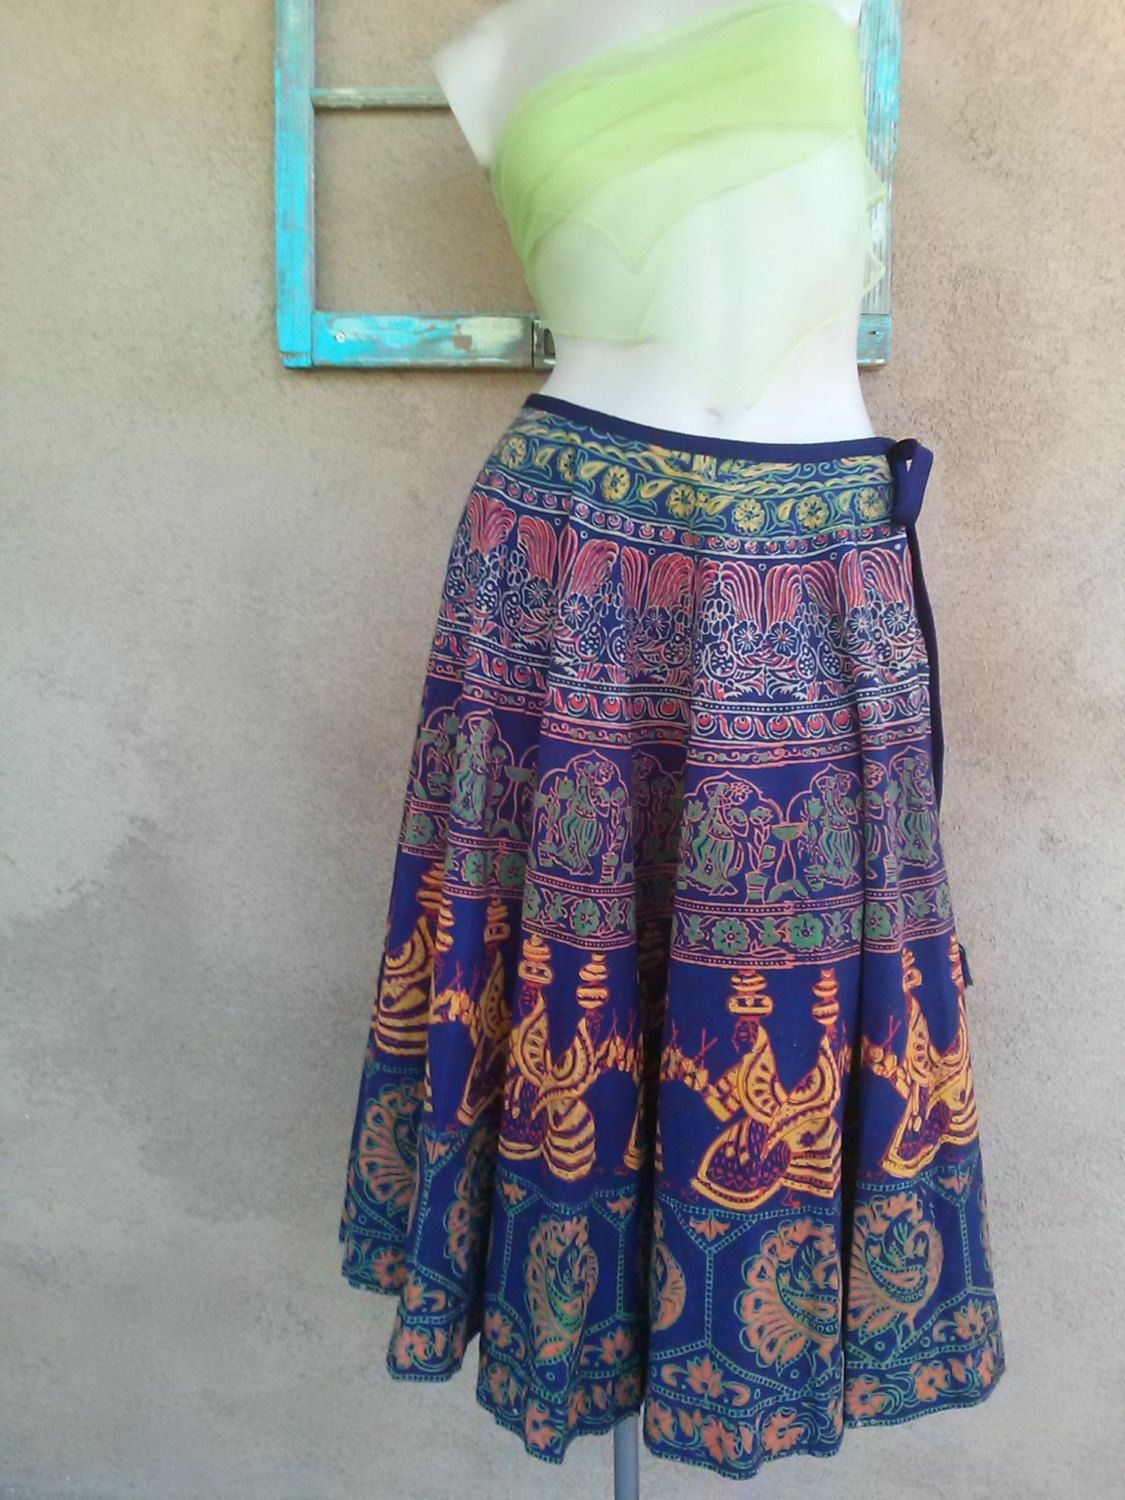 Vintage 1970s Batik Skirt Indian Peacocks W25 2015393 - pinned by pin4etsy.com